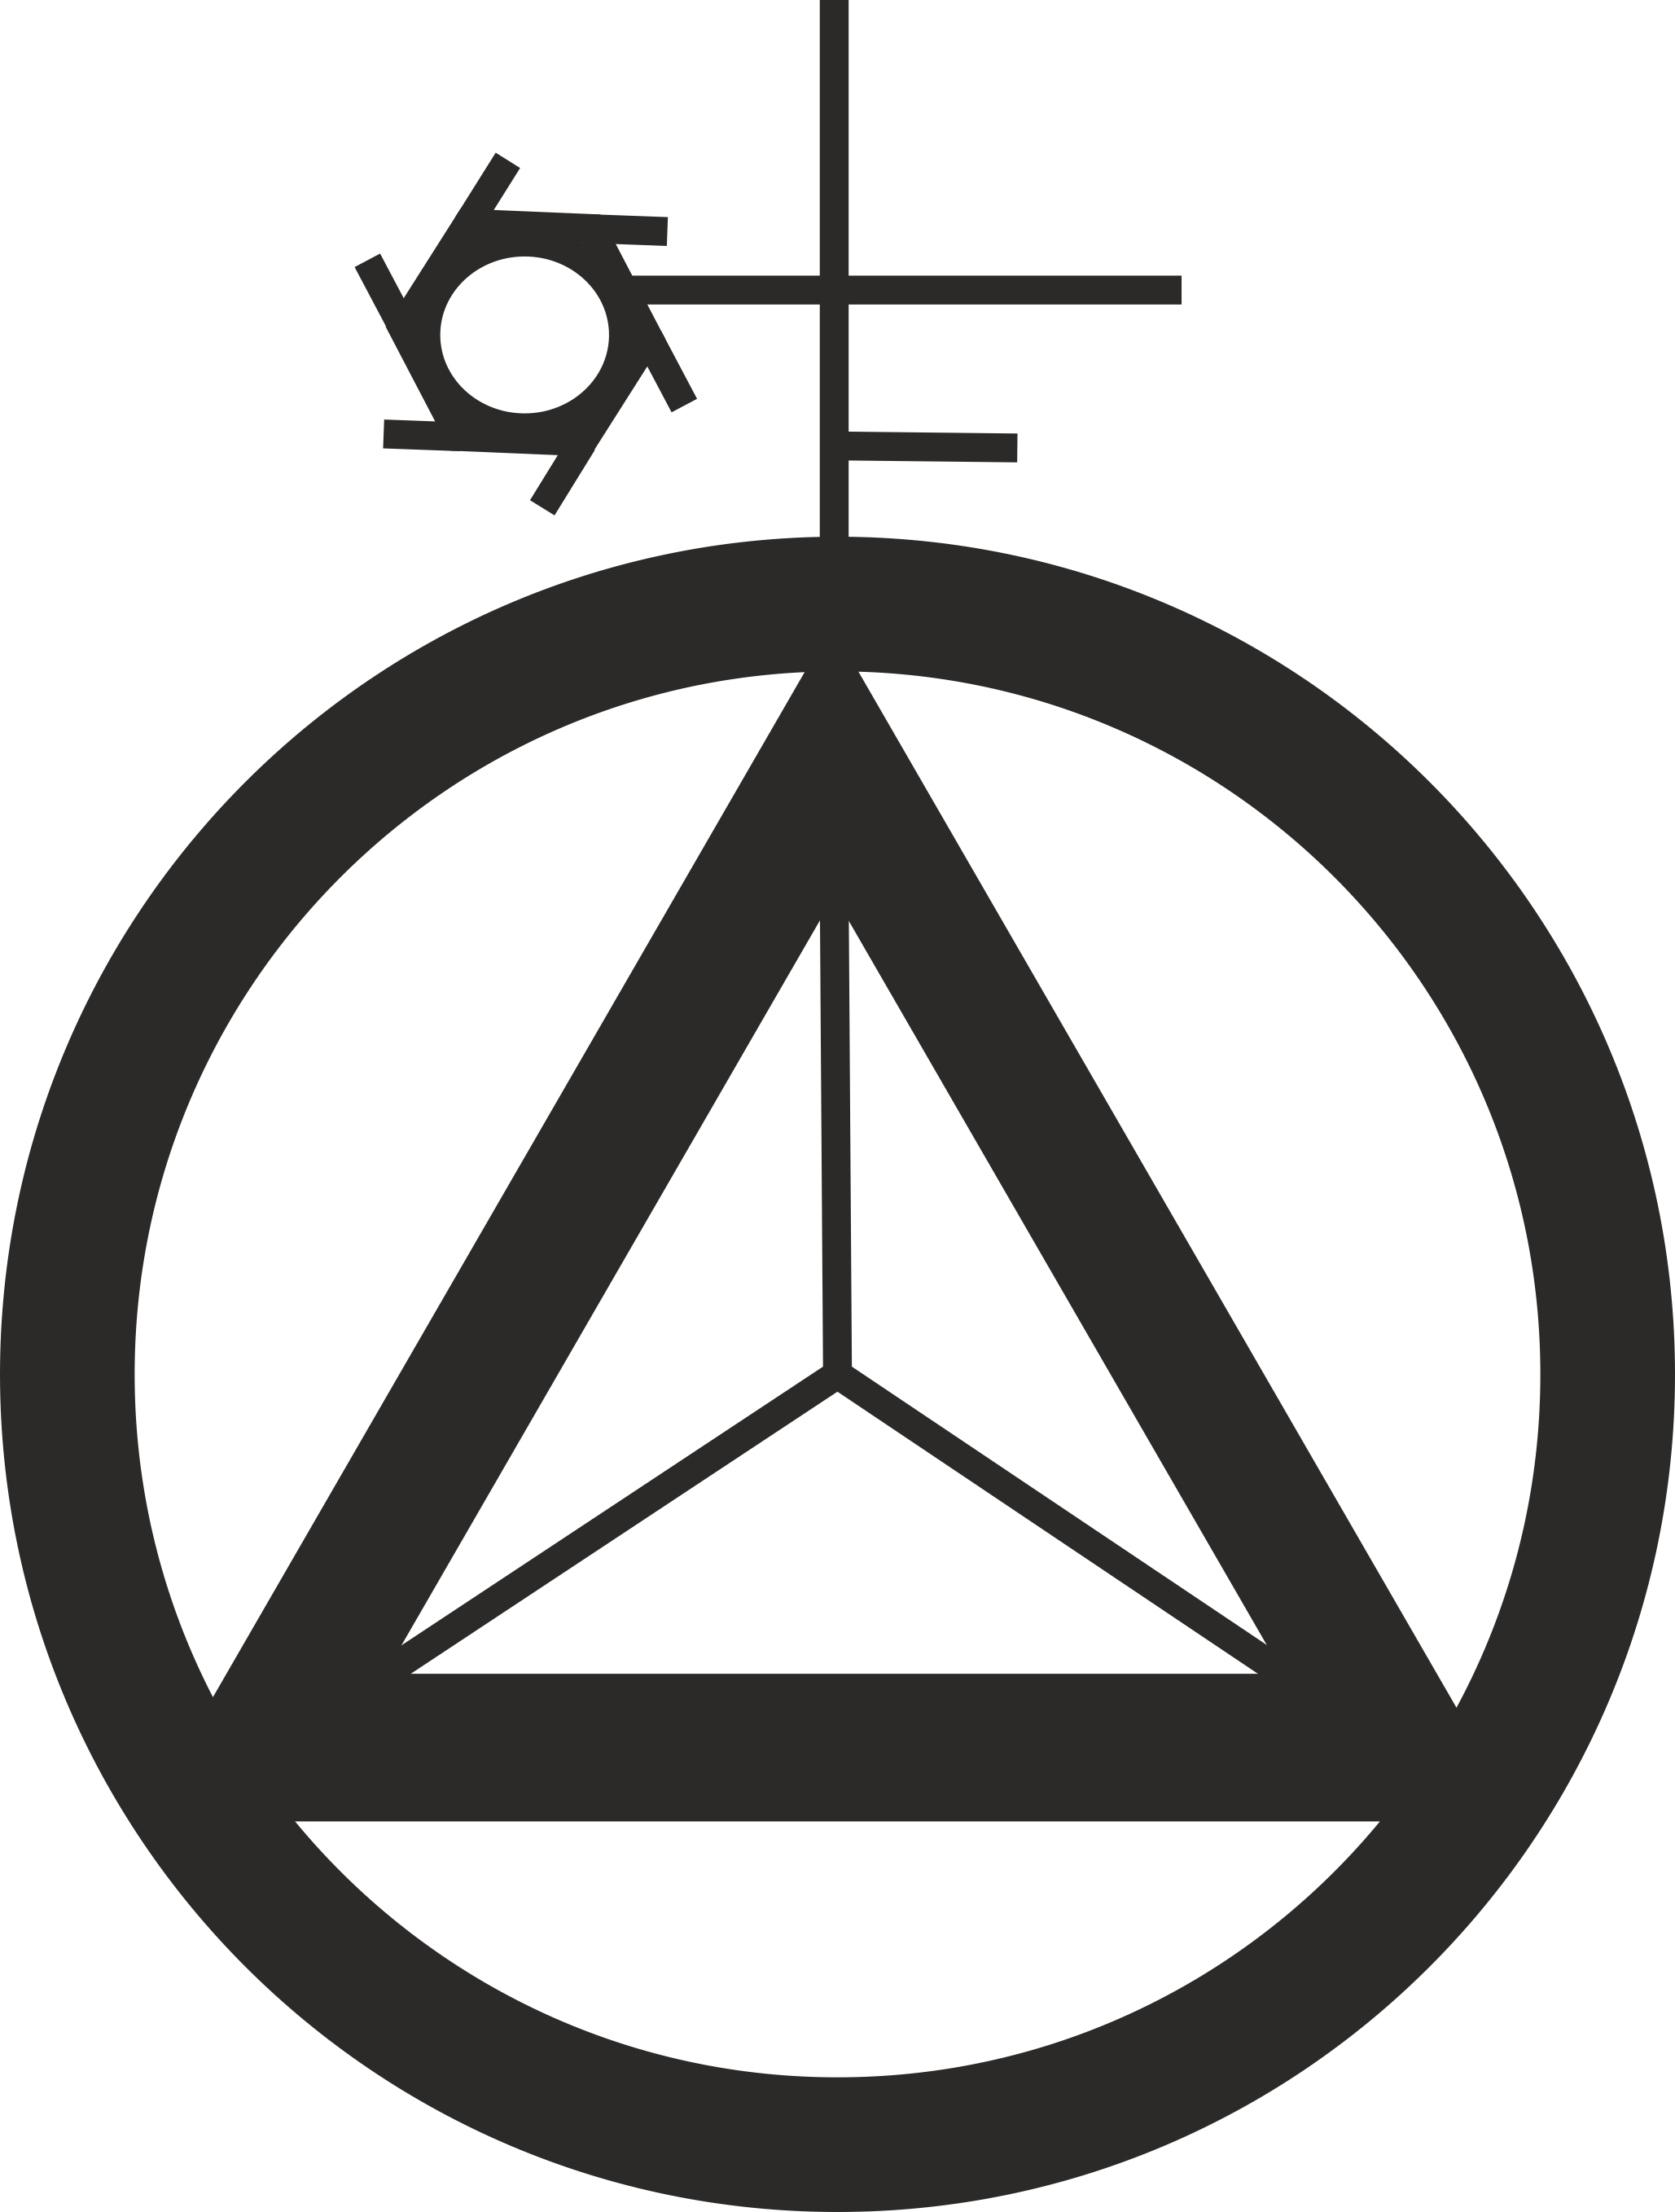 Witch symbol png. Image the secret circle